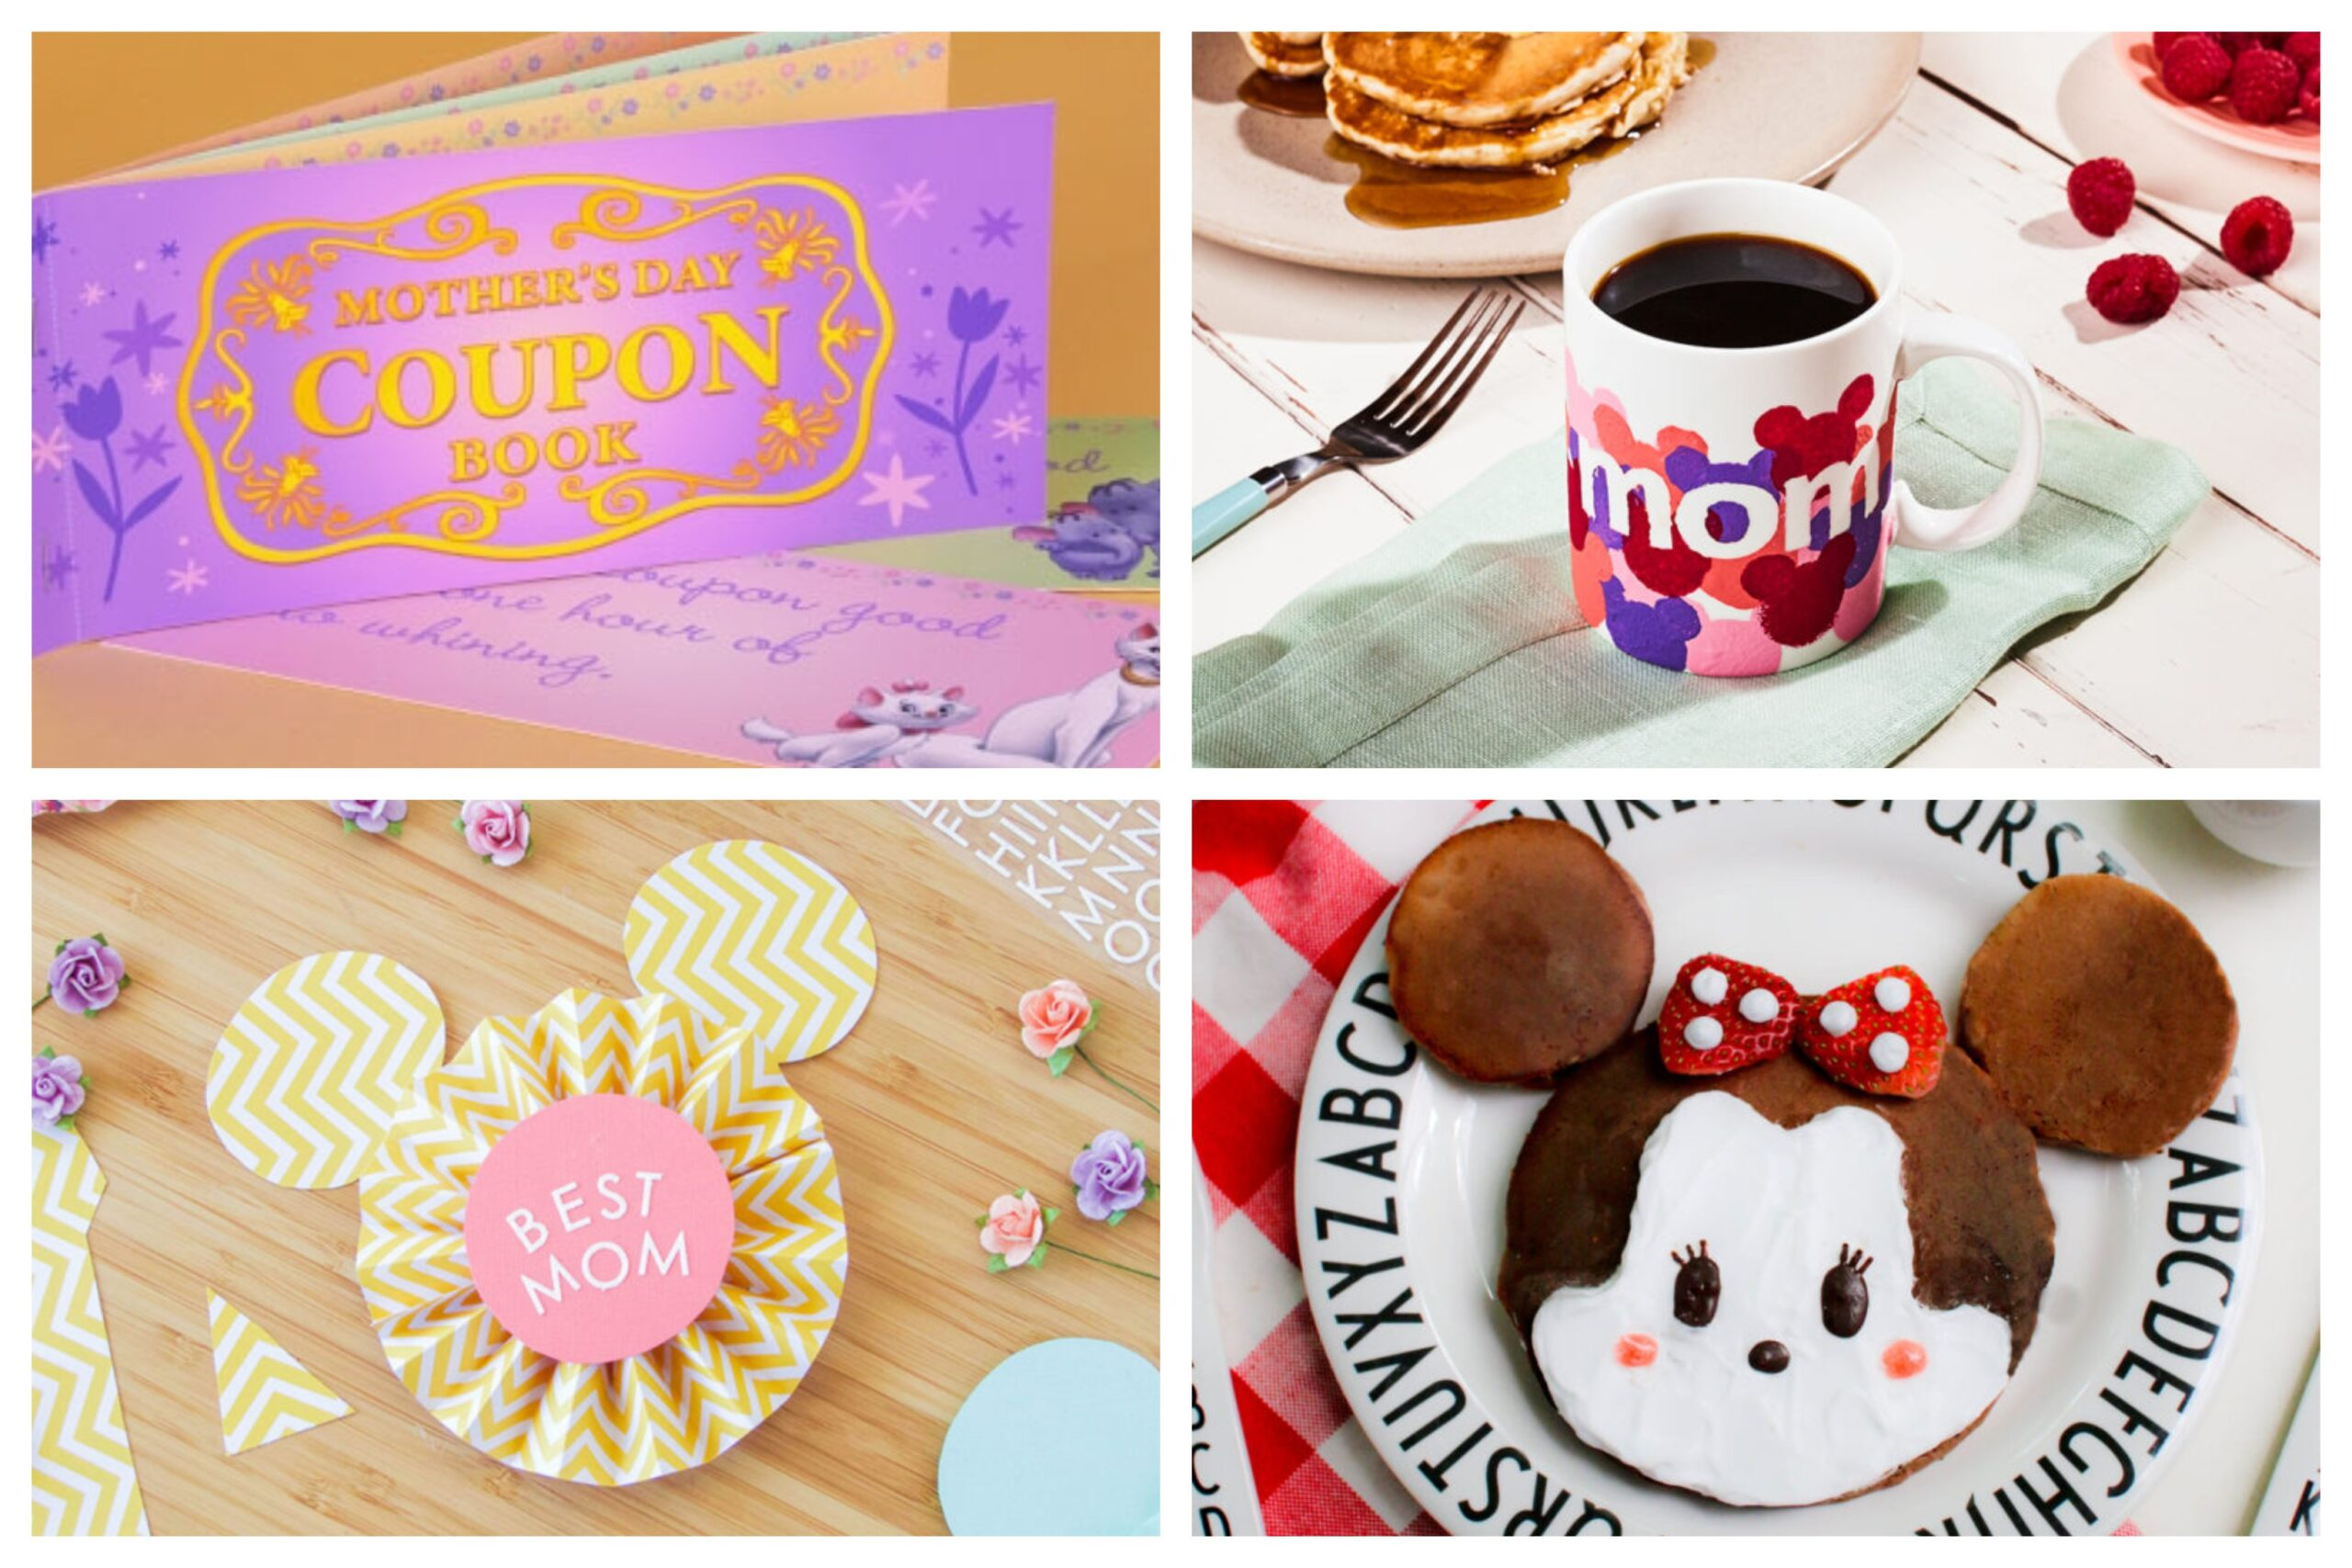 5 Disney Ways to Celebrate Mom This Mother's Day